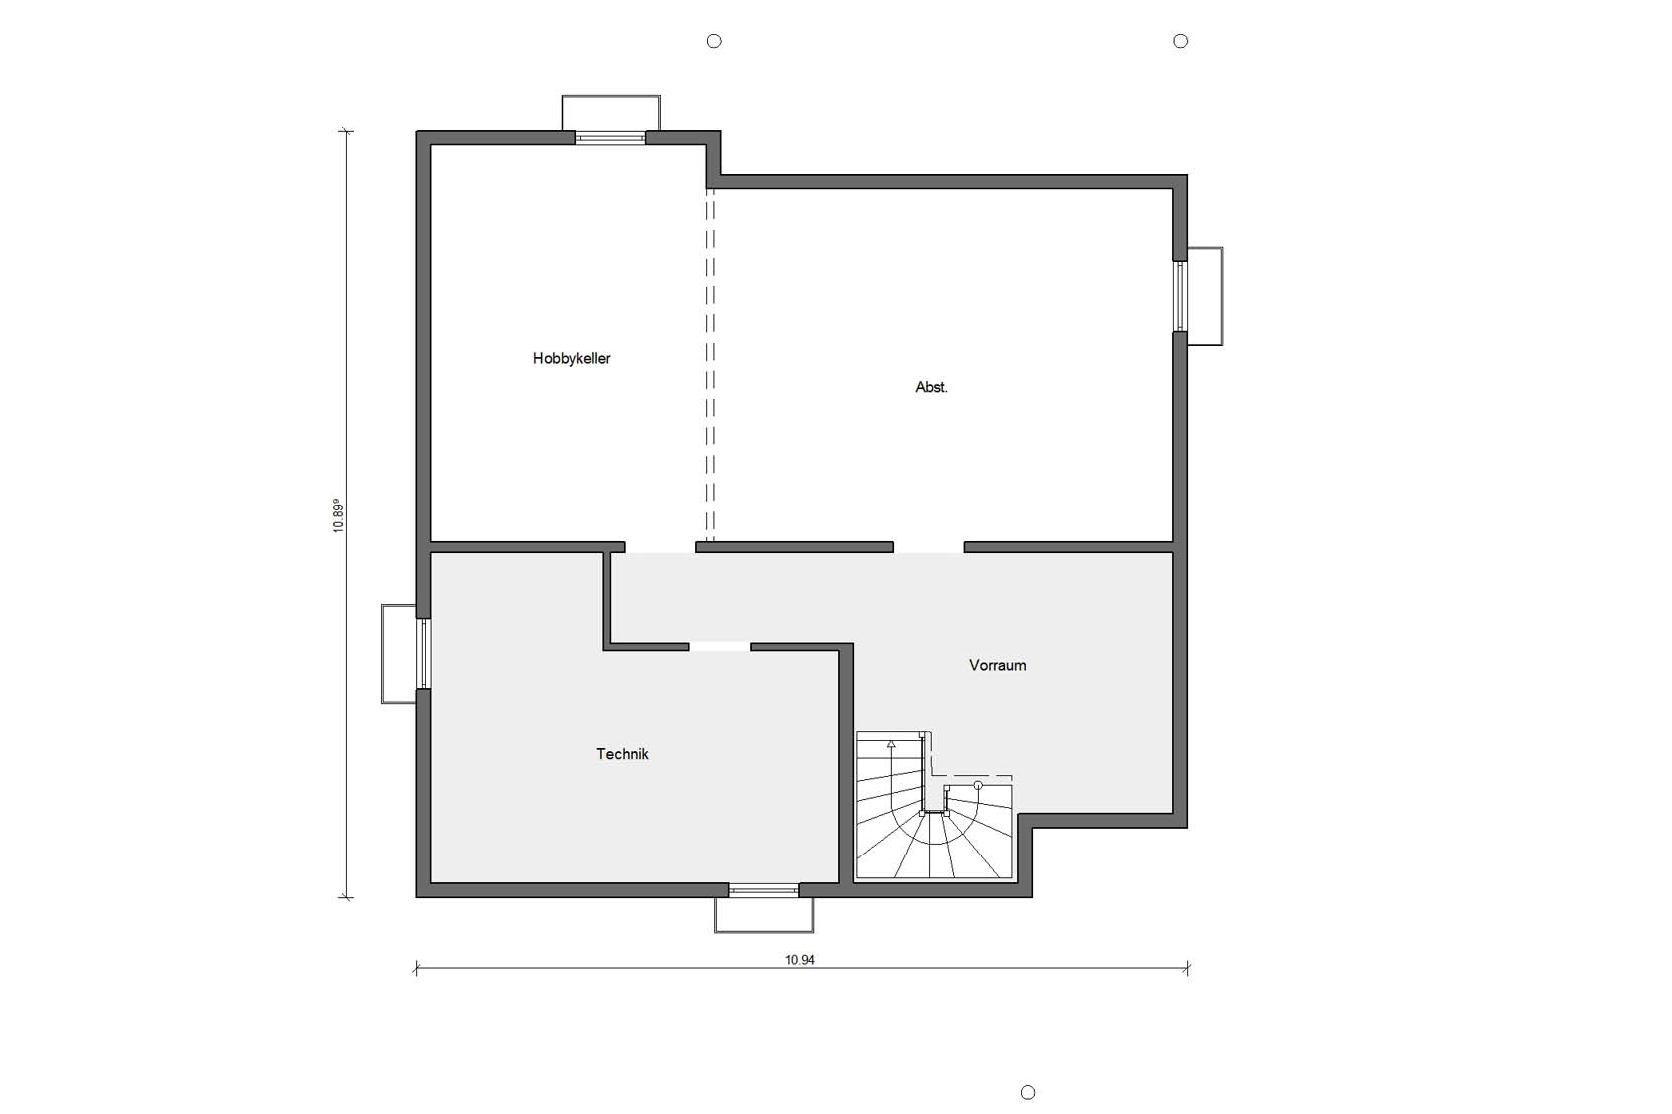 Floor plan basement E 15-205.1 House with conservatory